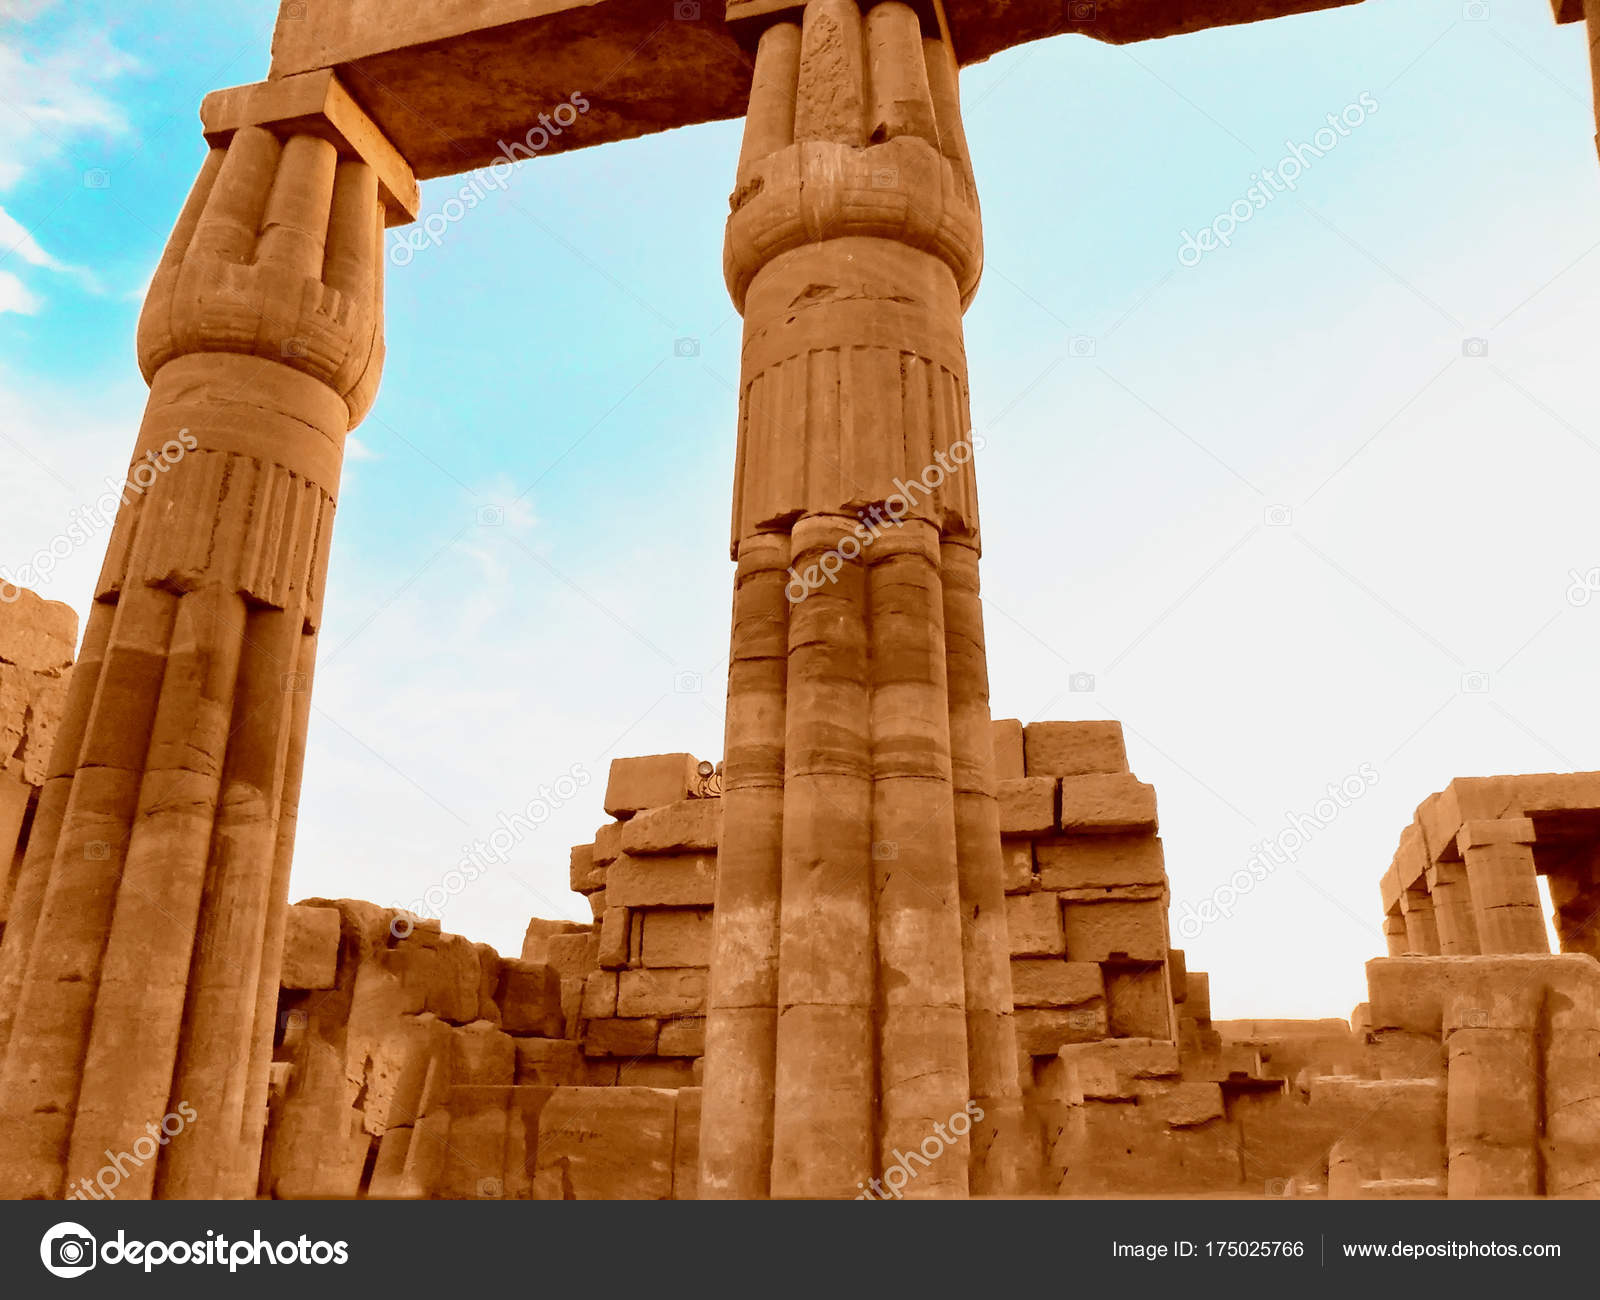 Les Ruines Antiques Du Temple Karnak En Luxure Egypt Photographie Sunriseta C 175025766 With luxe.tv, discover all the news about the world of luxury & lifestyle, 7 days a week, 24 hours a day. https fr depositphotos com 175025766 stock photo egypt north africa temple karnak html